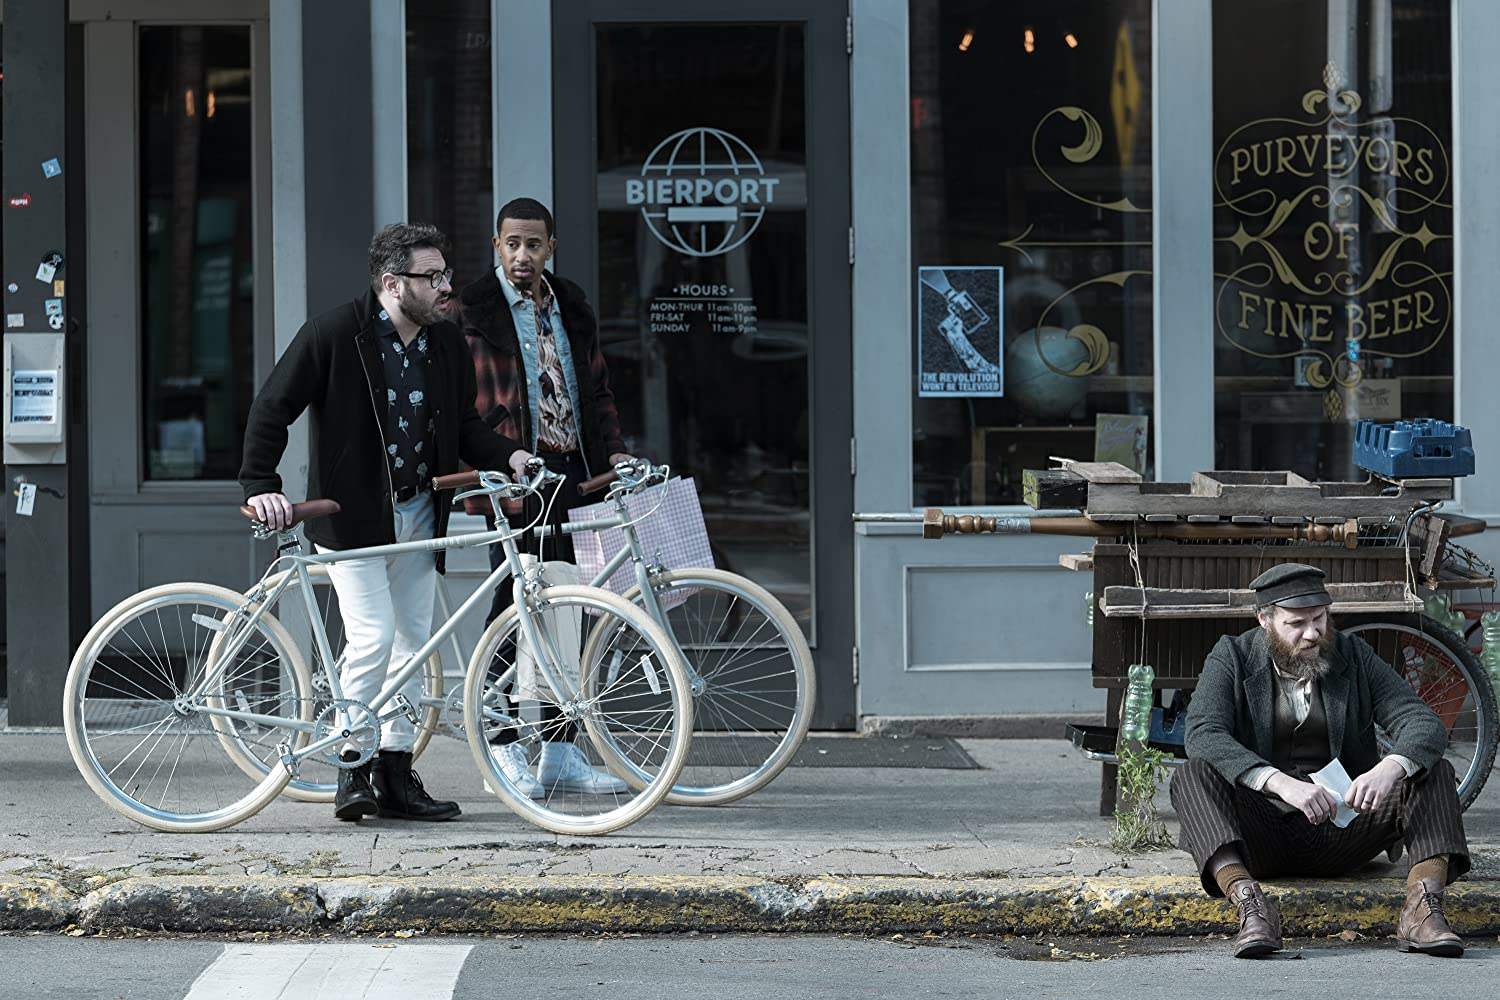 Seth Rogen, Eliot Glazer, and Kalen Allen in An American Pickle (2020). A New York street during the day, in front of a bar. Christian (Glazer) and Kevin (Allen) are stood with matching pale blue bicycles, smartly dressed in modern clothes. They are looking incredulously at Herschel (Rogen), a Jewish man with a thick beard and clothes 100 years out of date, who is sitting on the curb holding a sheet of paper and looking dejected.